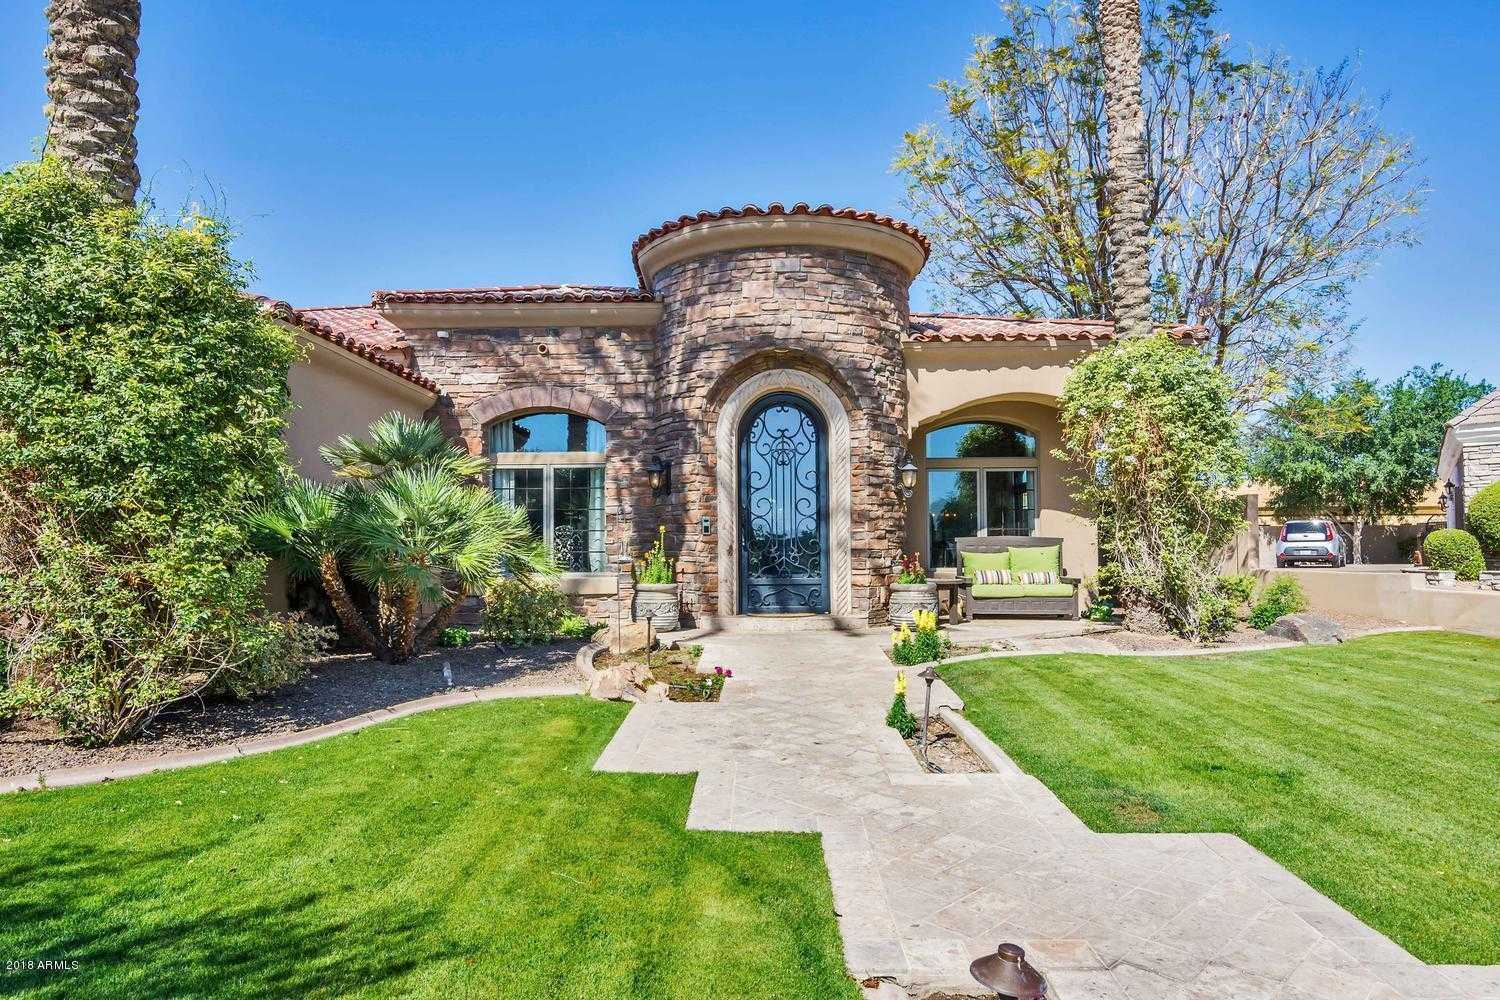 $1,299,000 - 6Br/4Ba - Home for Sale in Cantera Gates, Peoria